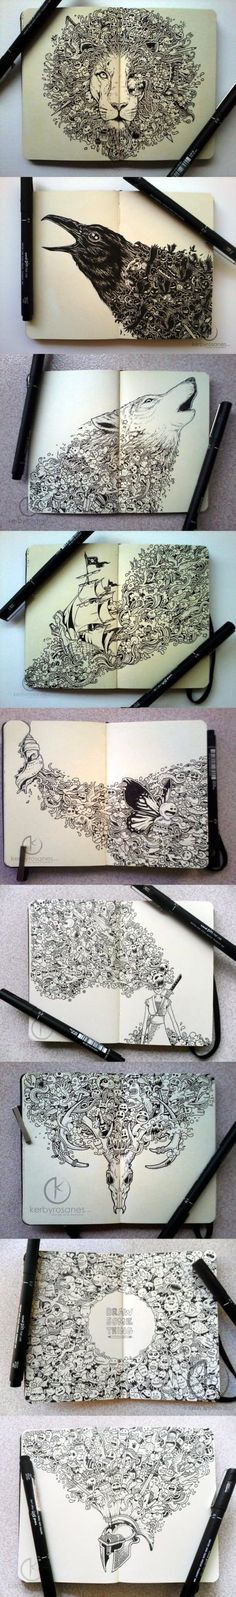 amazing sketch book